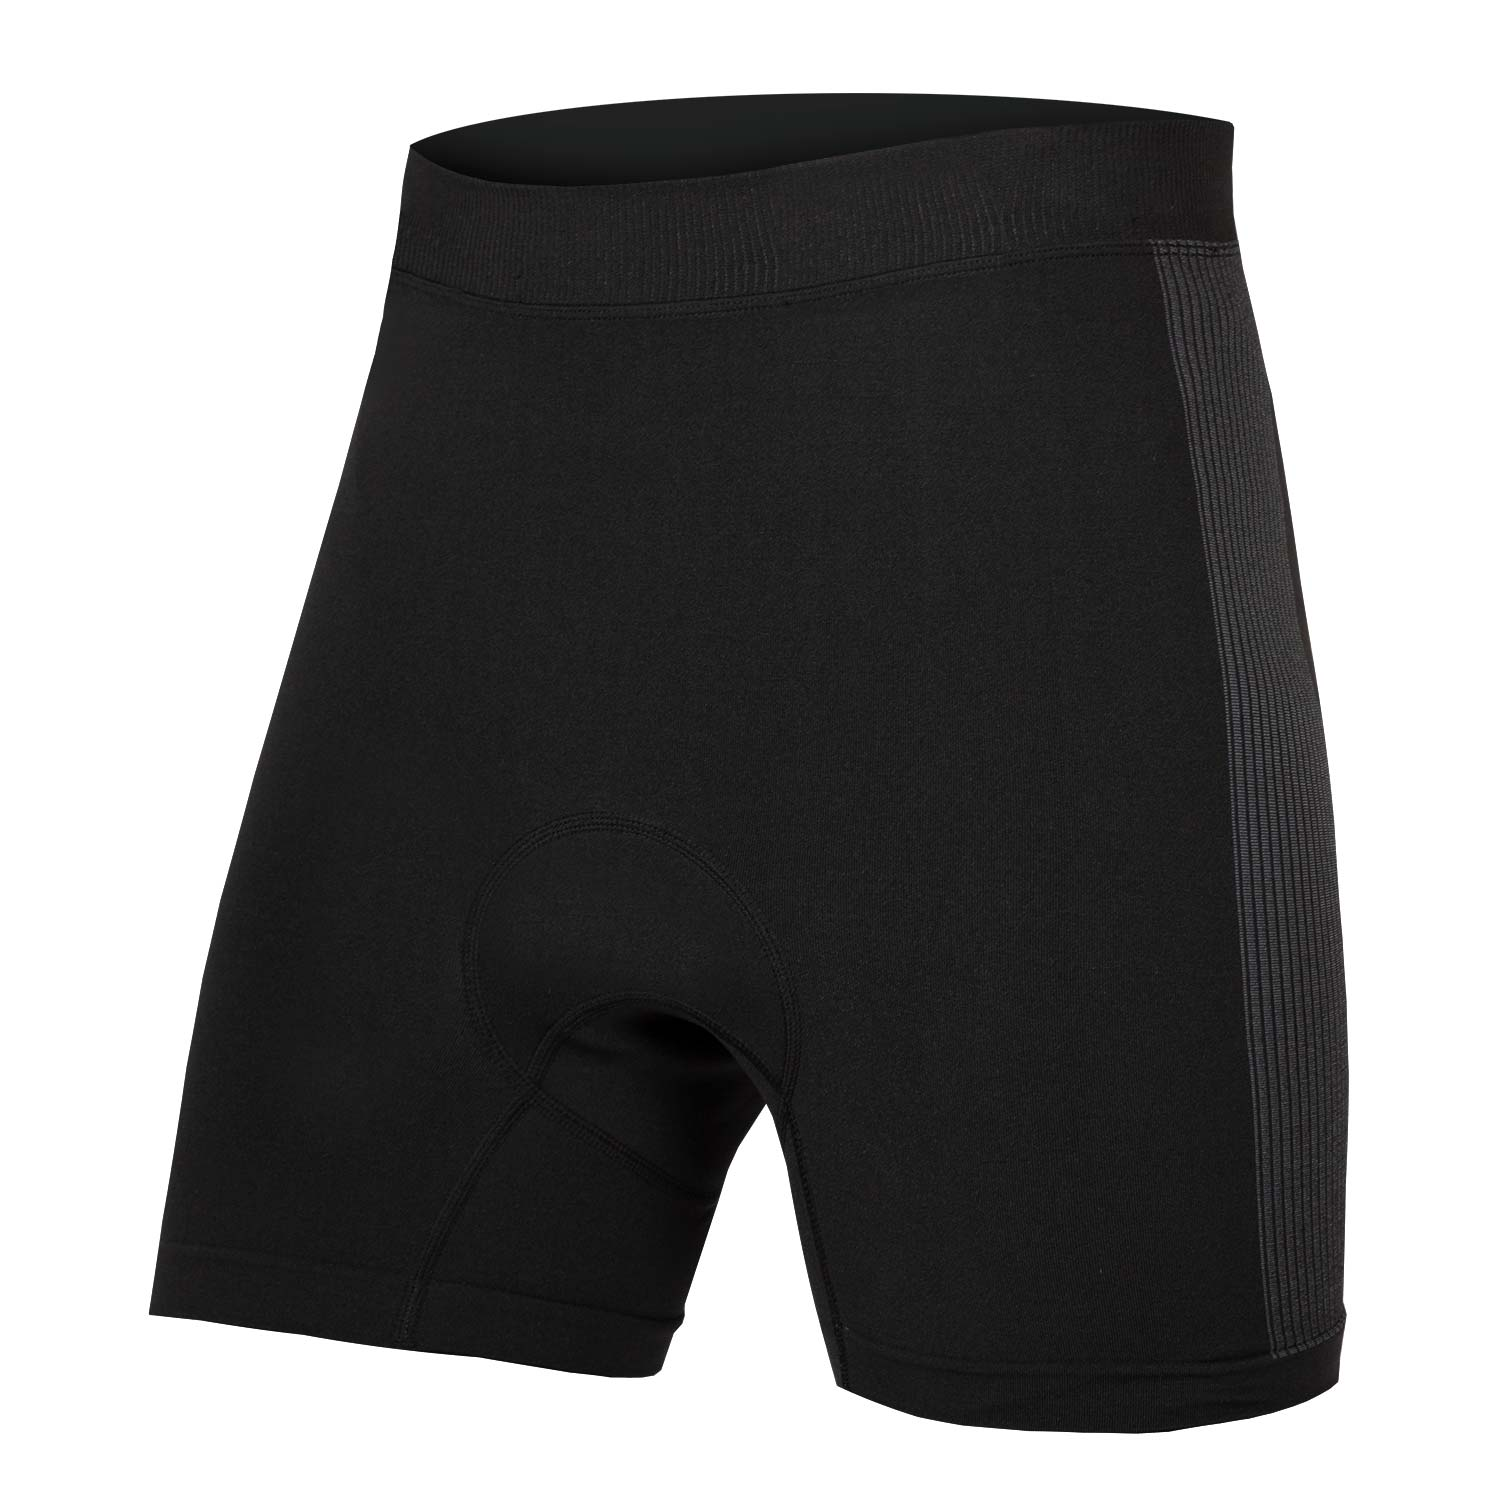 Engineered Padded Boxer II Black